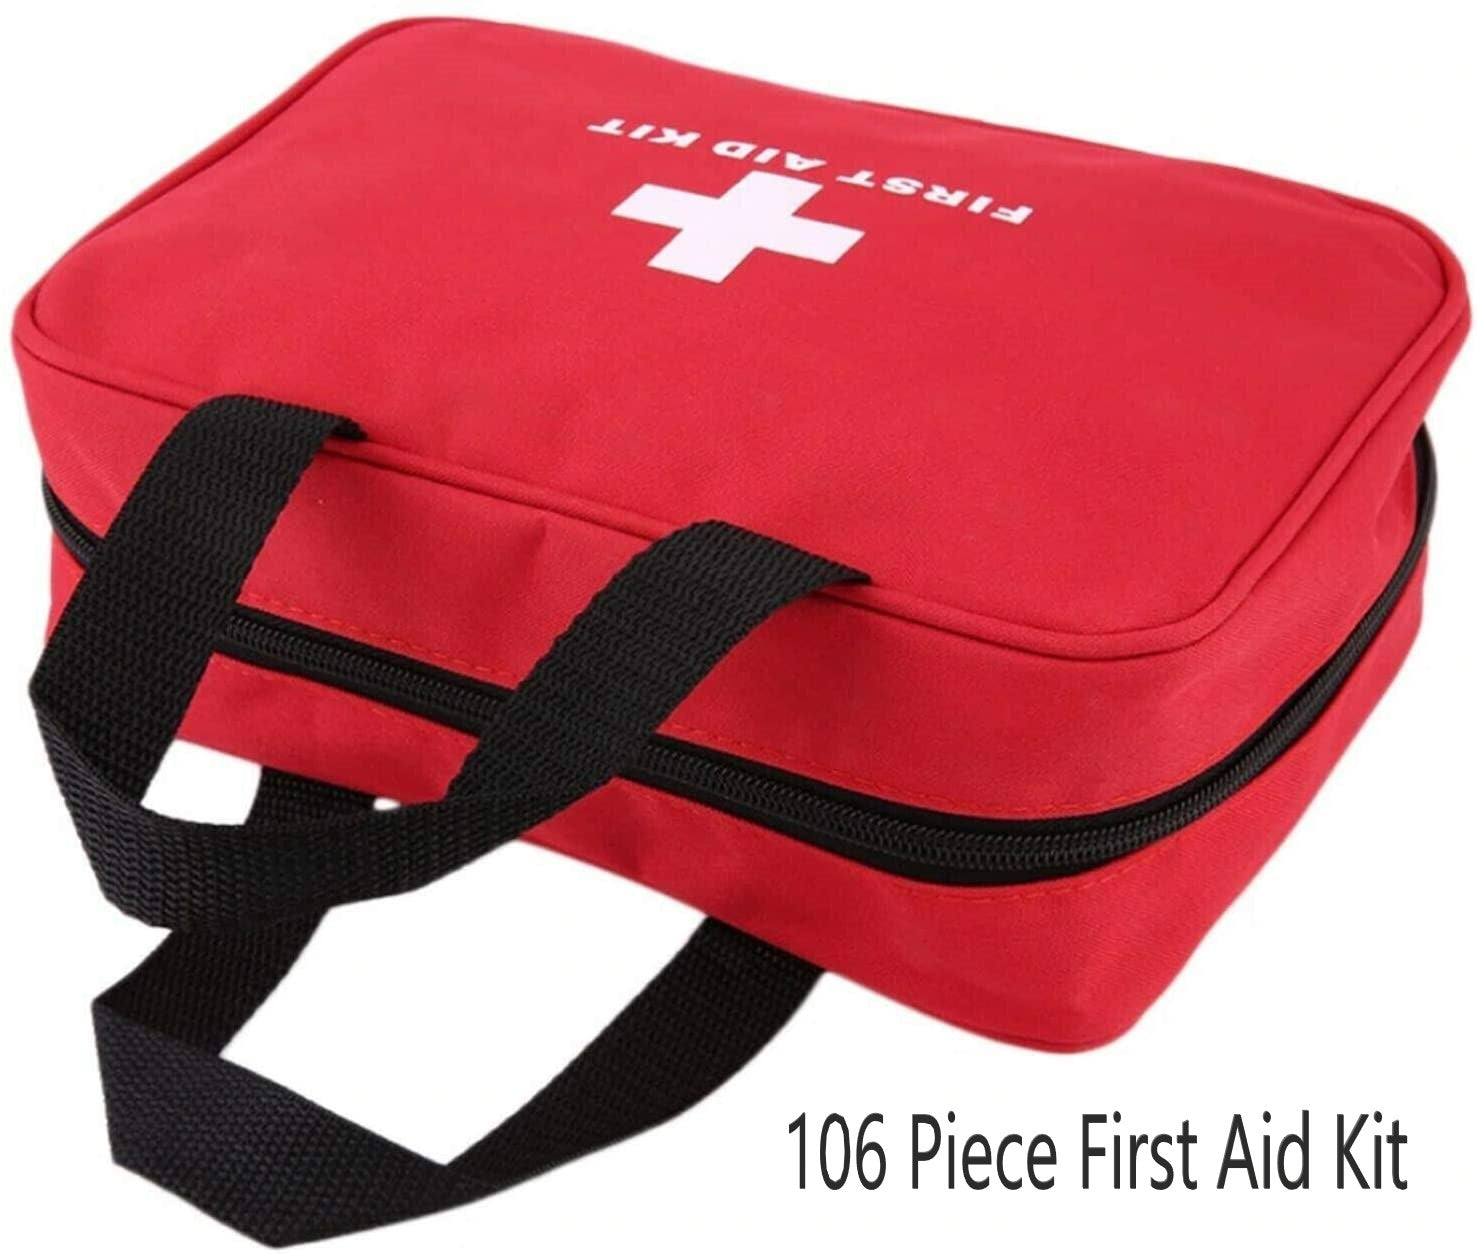 106pc First Aid Kit with Carry Bag